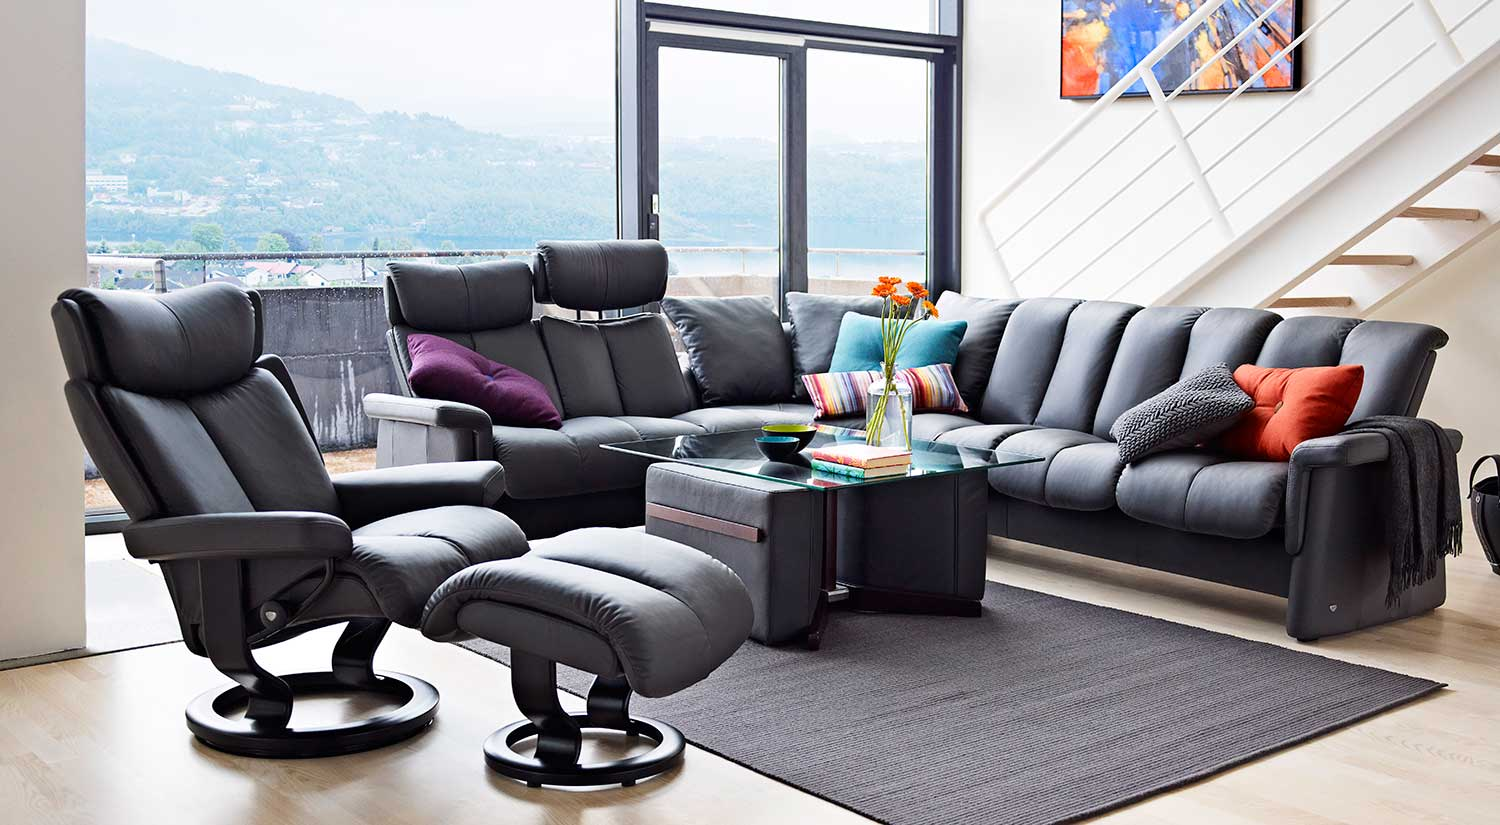 Sectional Sofas With Recliners Circle Furniture - Stressless Magic Chair | Ekornes Chairs Ma